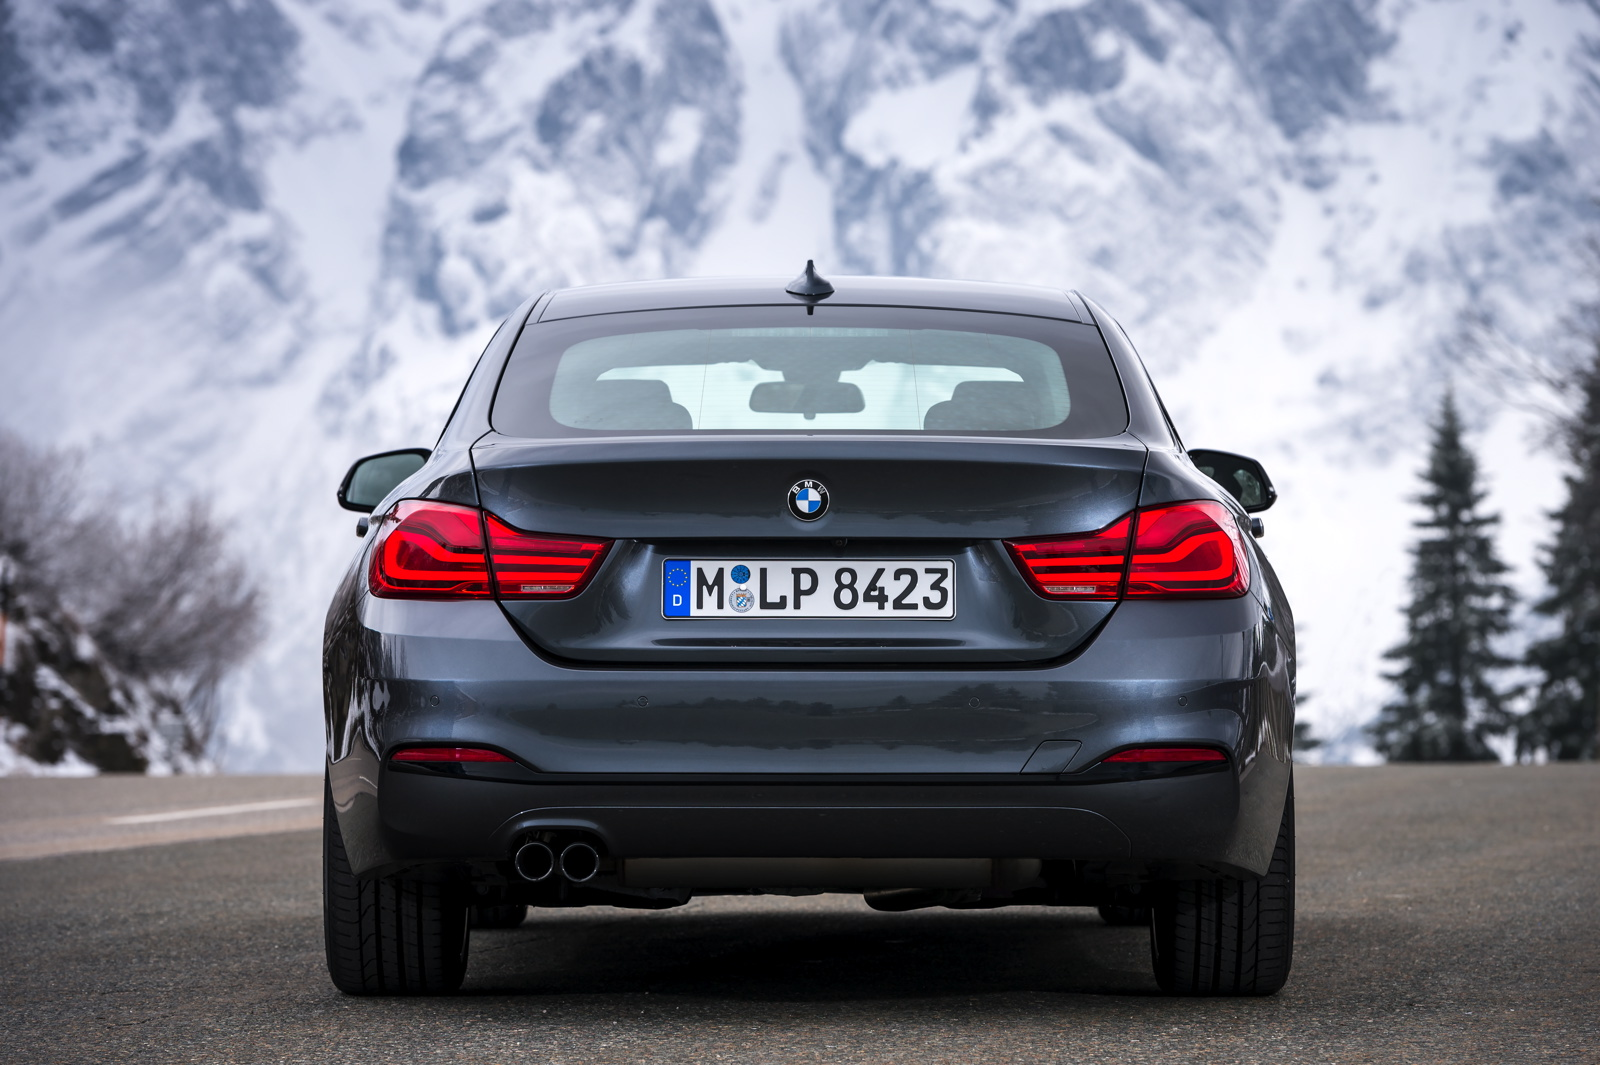 Bmw 428i Convertible 2017 >> 2017 BMW 4 Series Gran Coupe Facelift - Photo Gallery